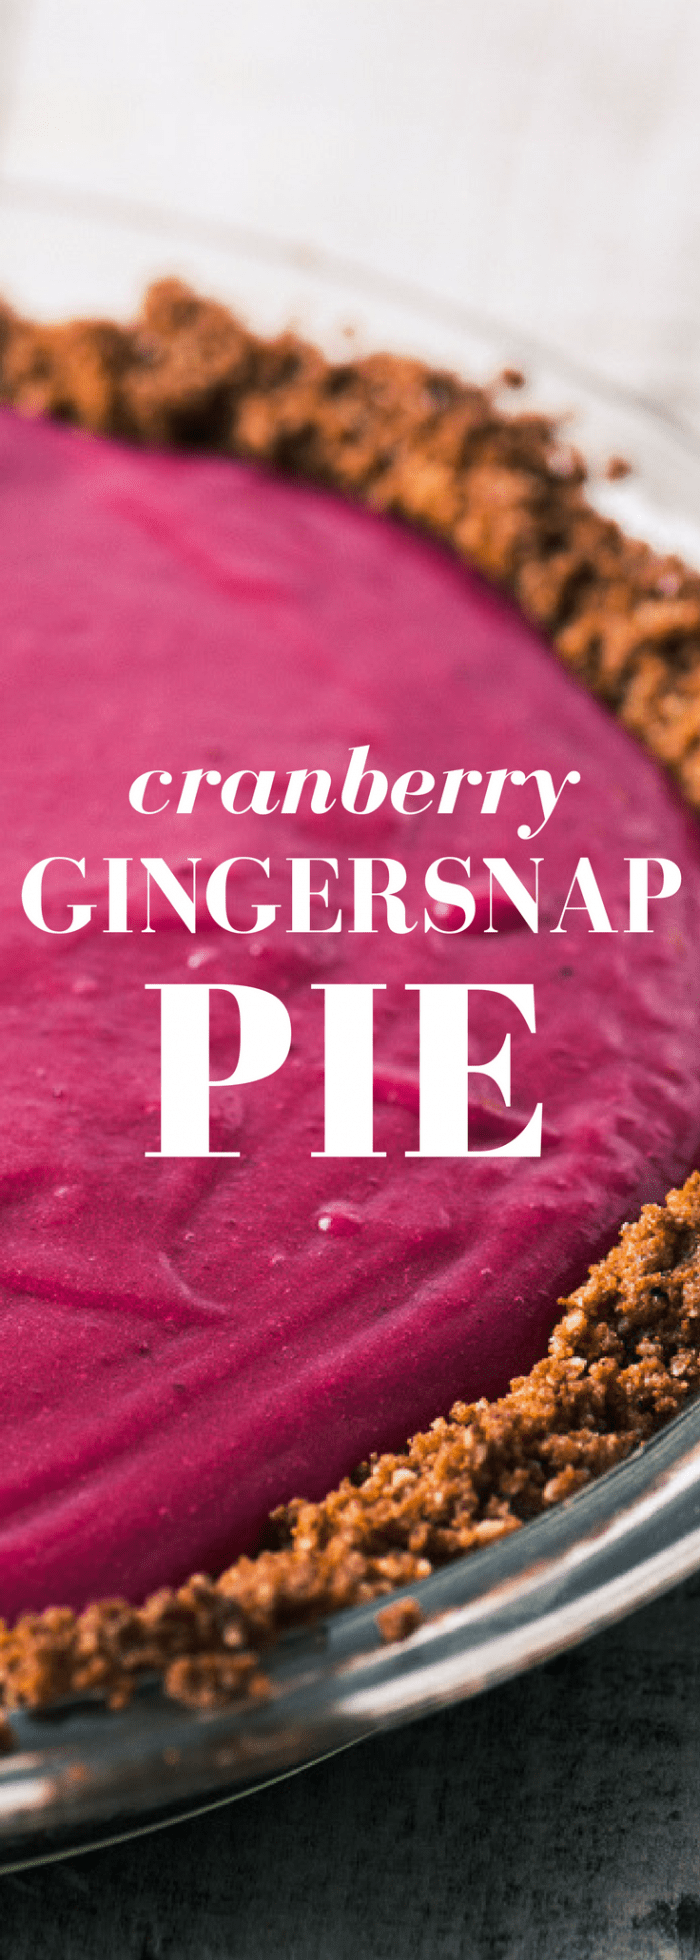 Cranberry Gingersnap Pie with its spicy gingersnap crust and silky cranberry curd filling brings a little va-va-voom to the traditional dessert table! ~ theviewfromgreatisland.com